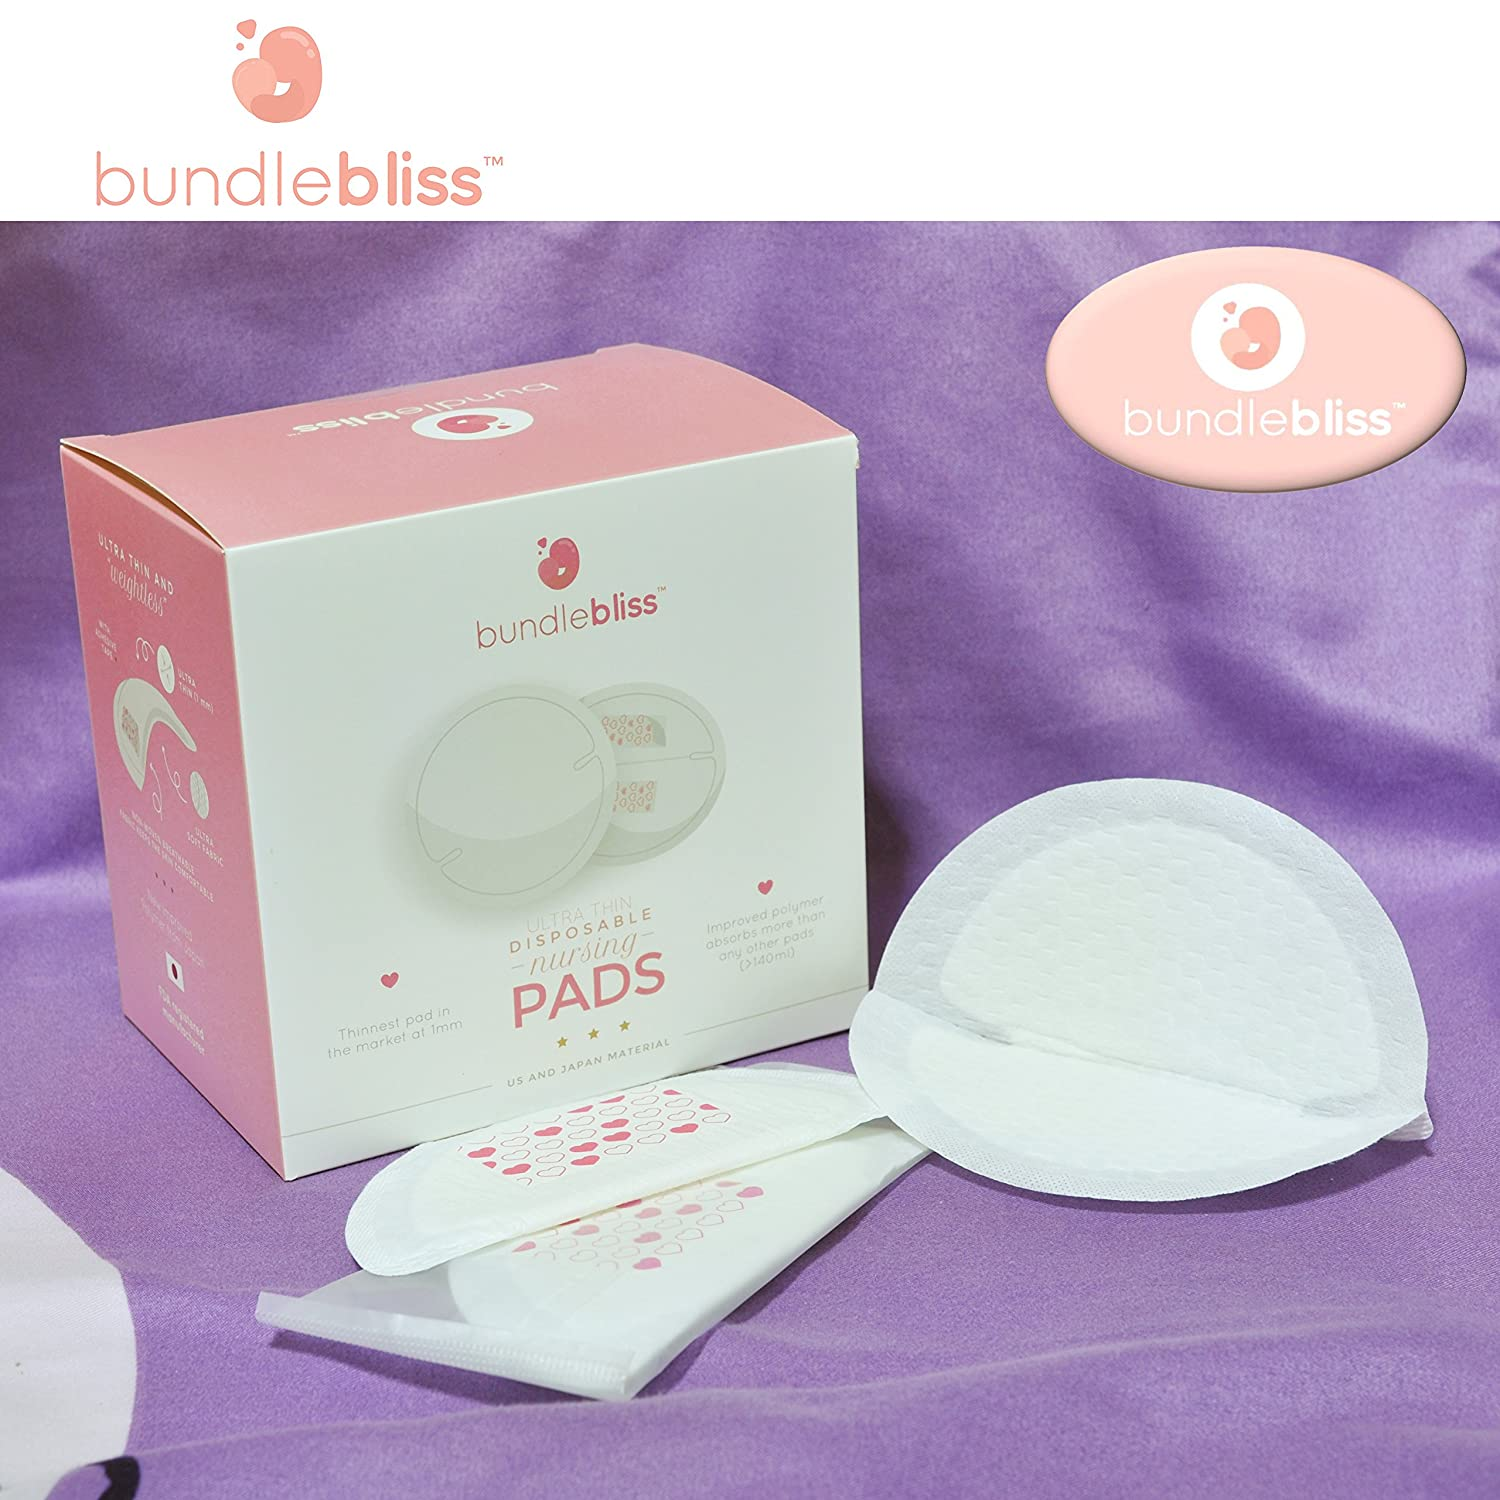 Bundlebliss/Þ/Disposable Ultra Thin Nursing Breast Pads 60 Highly Absorbent Breastfeeding Milk Pads Thinnest Pad Ever